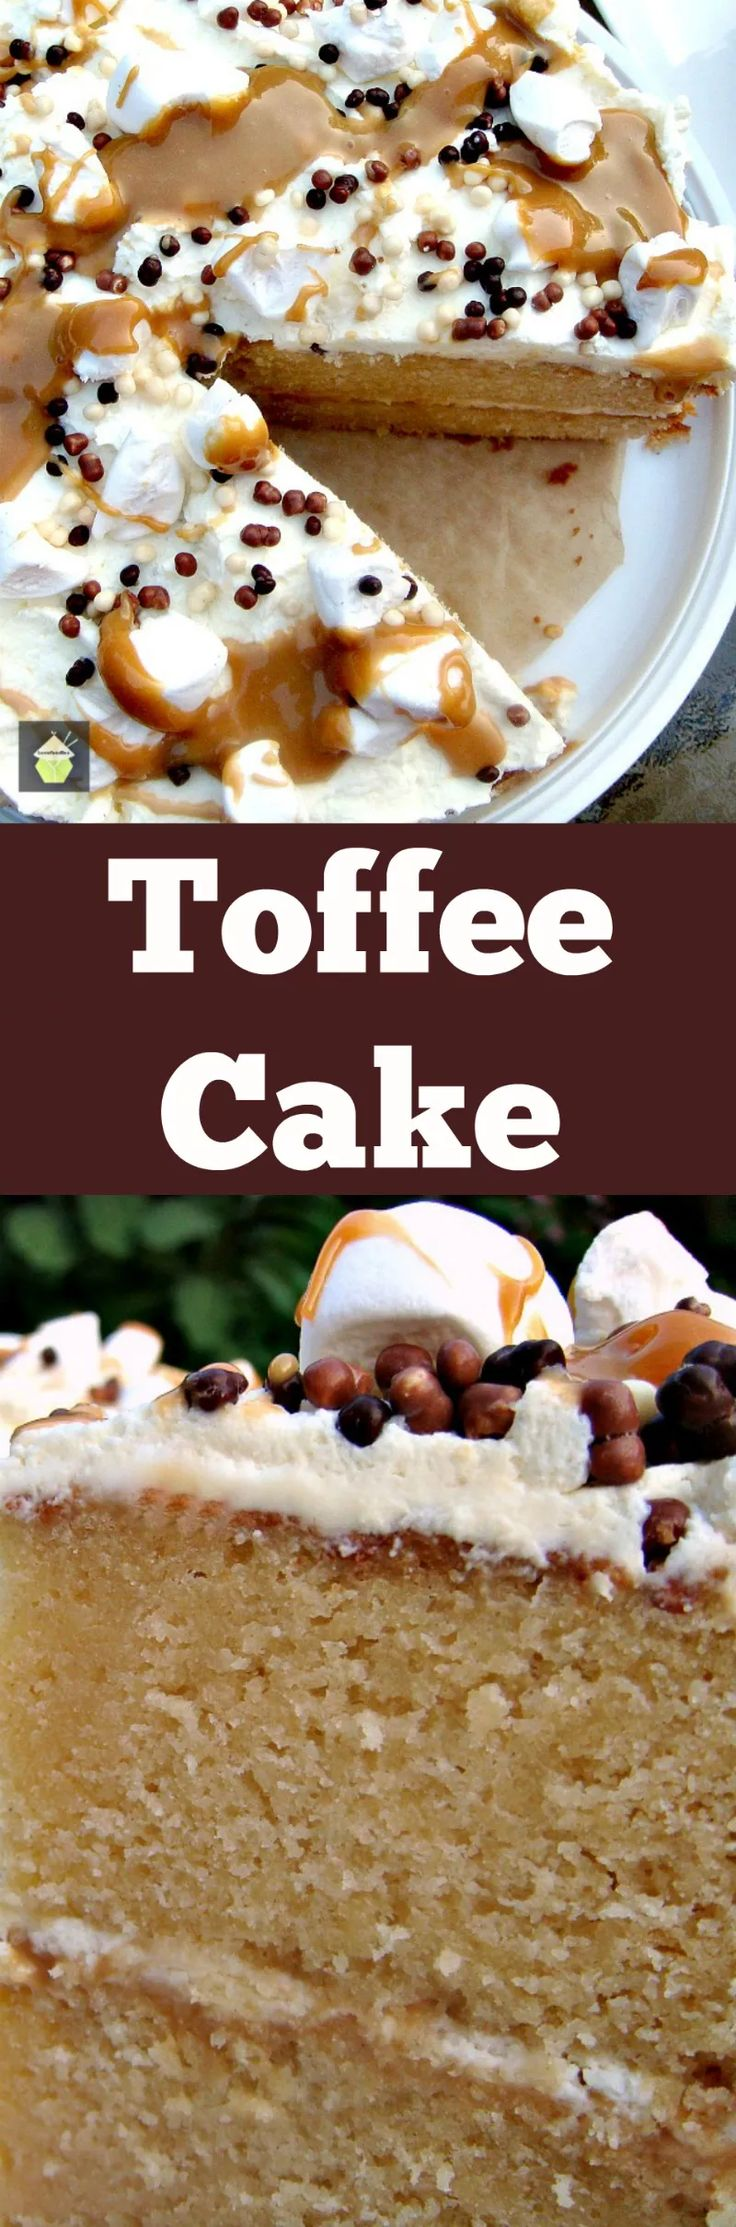 Cheeky Toffee Caramel Cake - Always a show stopping jaw dropper! | Lovefoodies.com